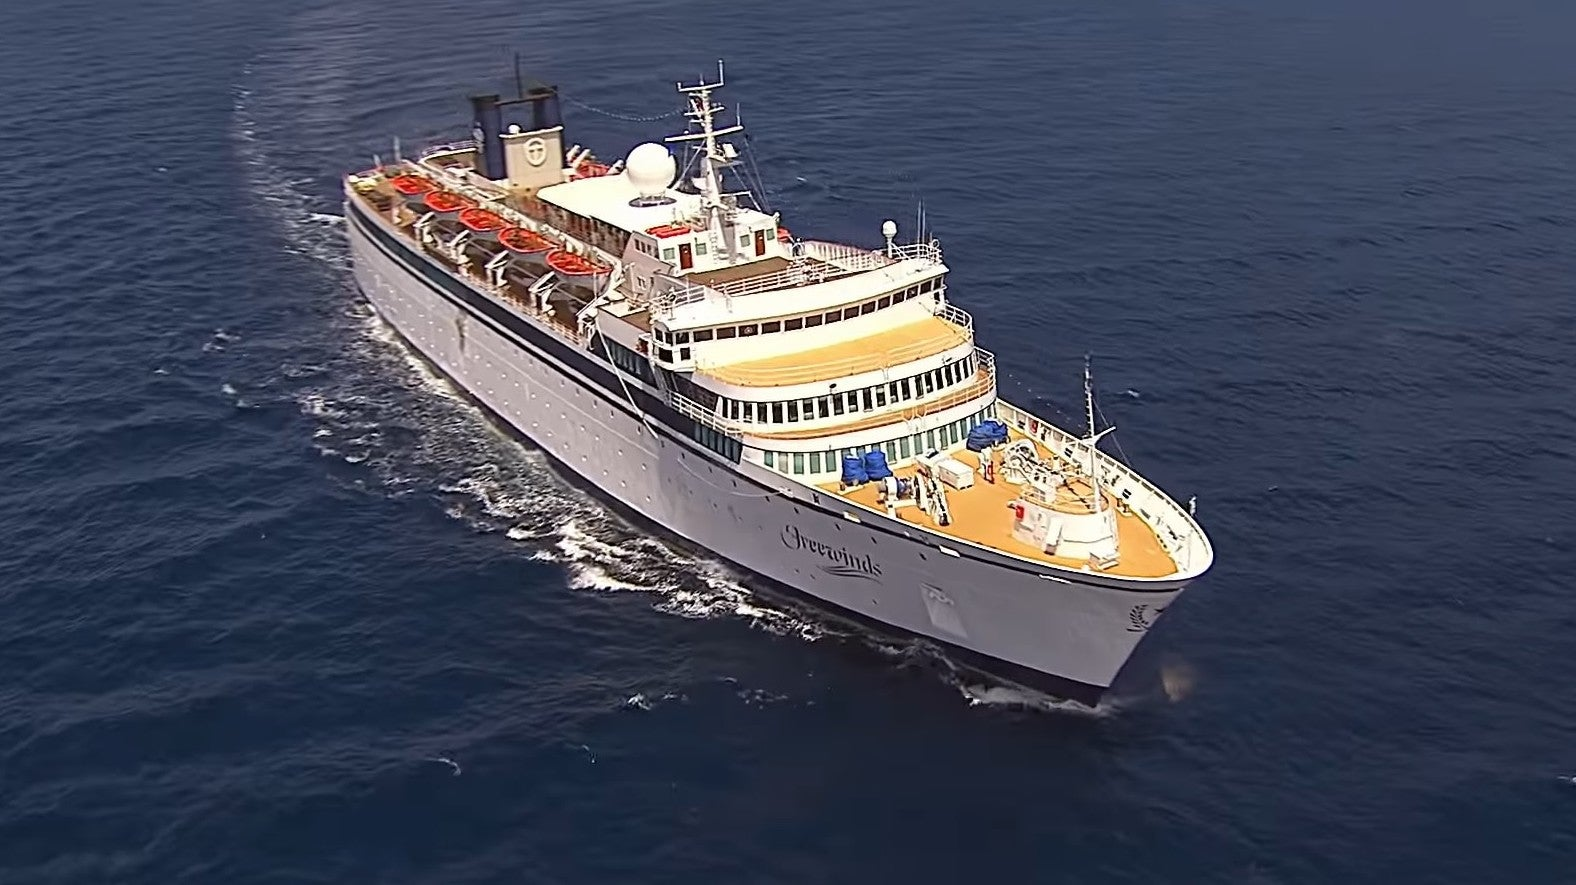 Scientology cruise ship quarantined after measles diagnosis